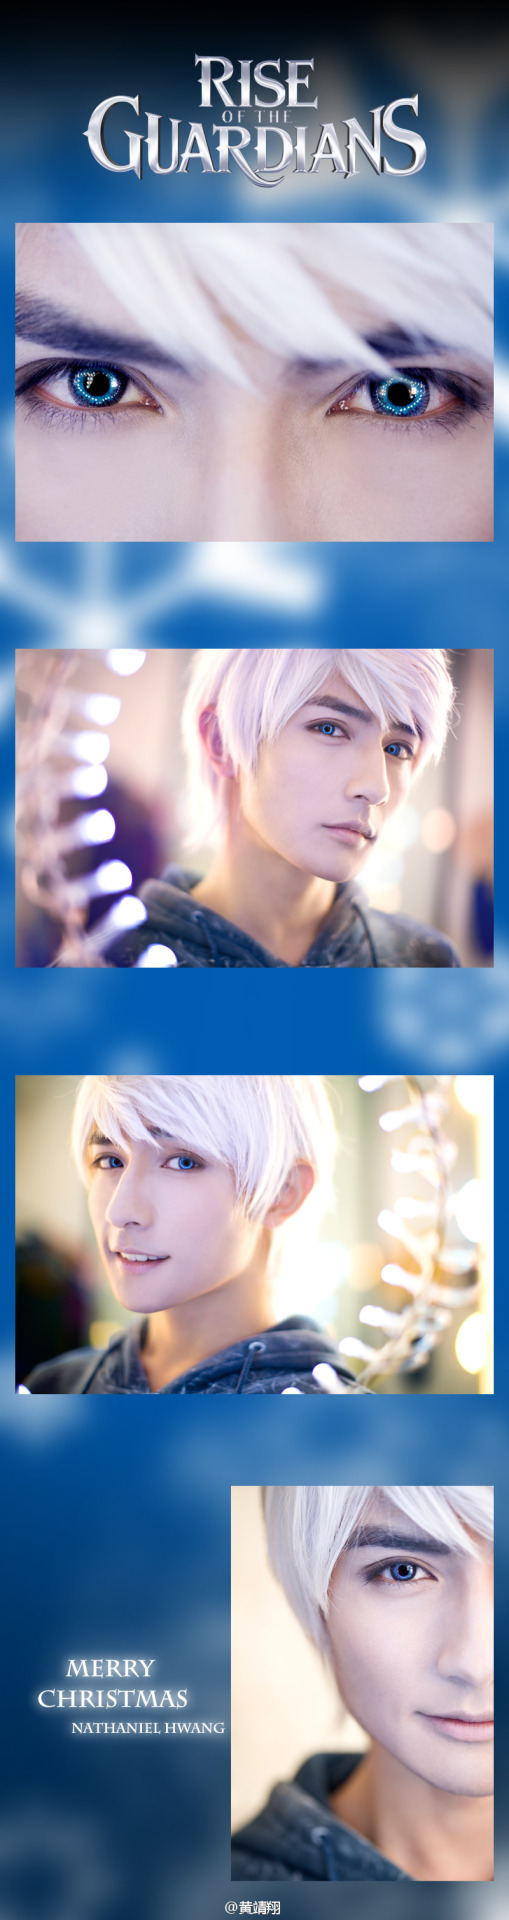 "ticktockdonttouchtheclock:   JACK FROST - Cosplay by-  Nathaniel Hwang  OH NO HE'S HOT.  ""Why does everybody say I'm hot? I mean, I'm Jack Frost! I'm cold."""